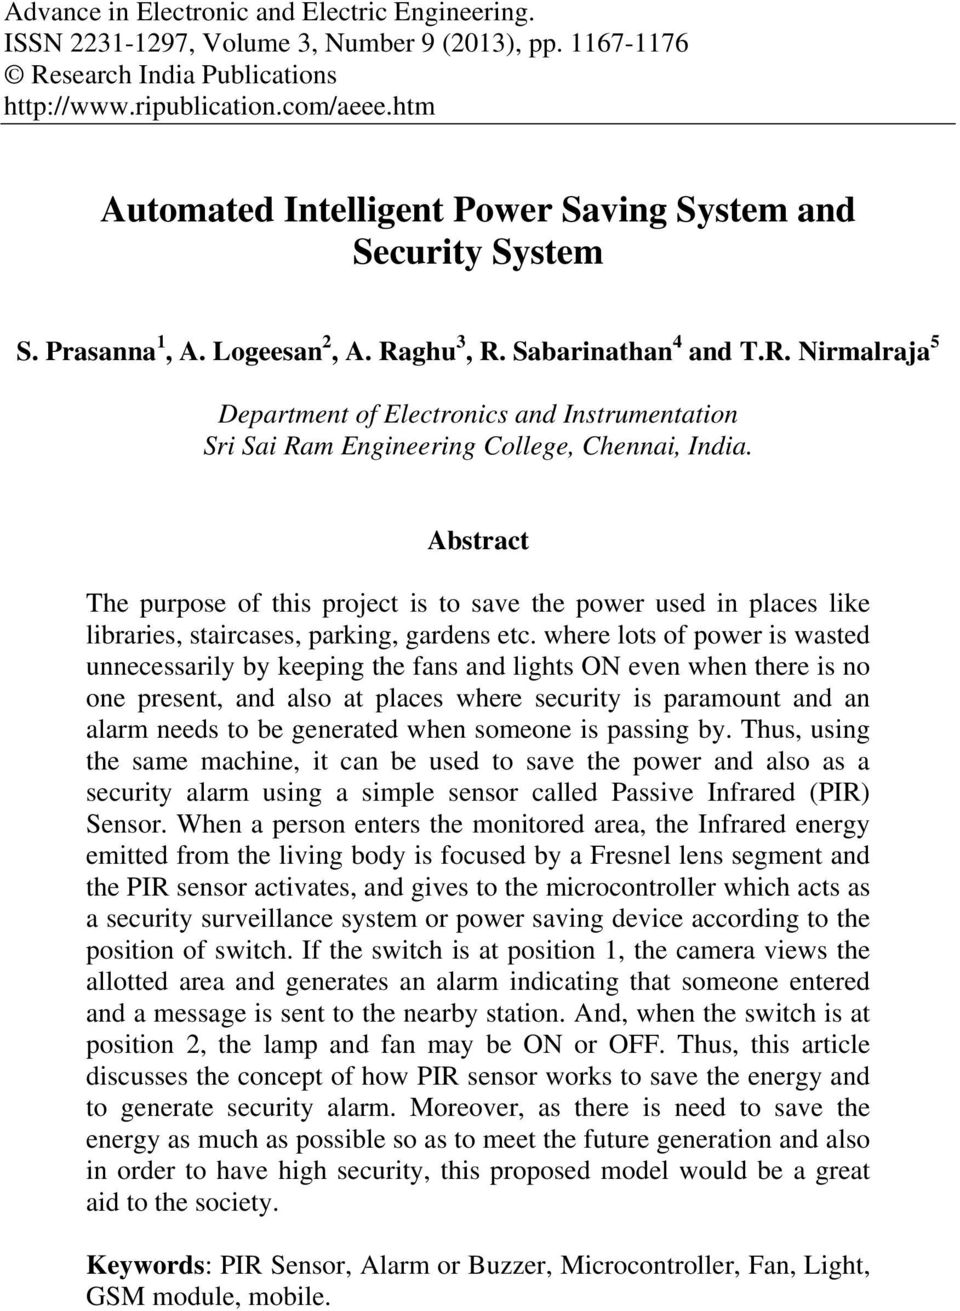 Automated Intelligent Power Saving System And Security Pdf Ac Fan Speed Control Using Android Mobile Microtronics Technologies Ghu 3 R Sabarinathan 4 Tr Nirmalraja 5 Department Of Electronics Instrumentation